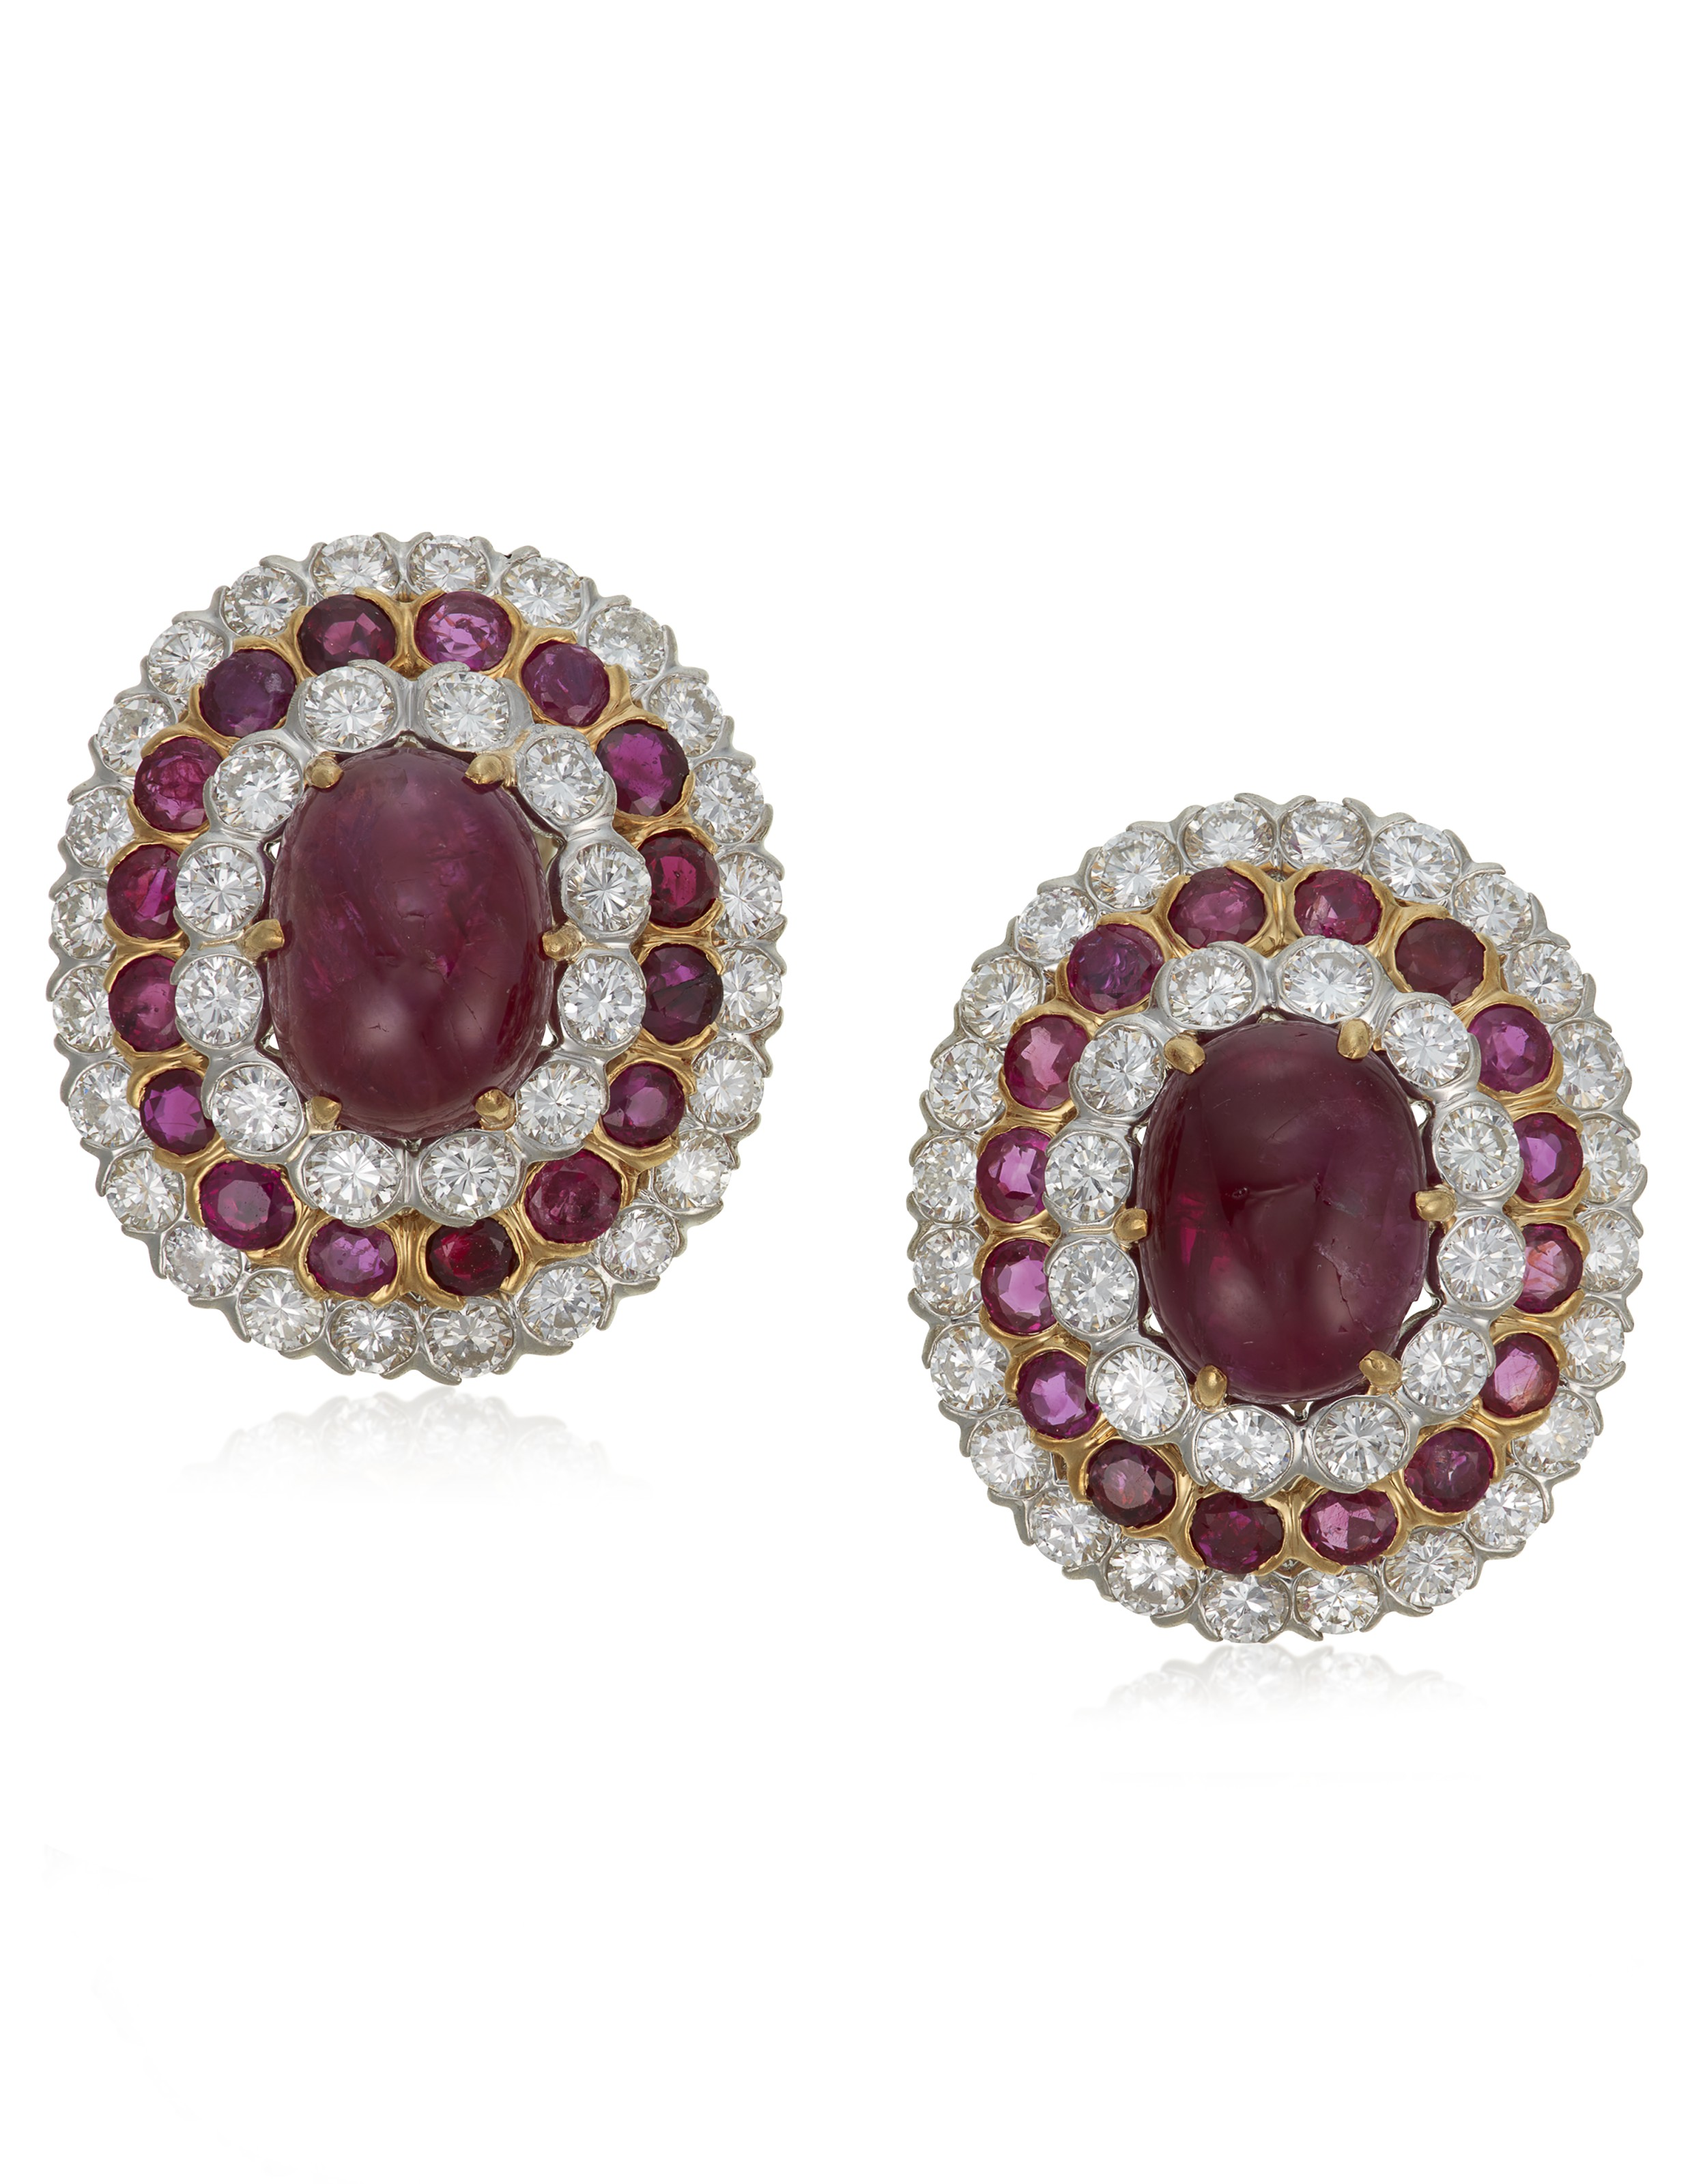 Ruby and diamond earrings, by David Webb. Estimate $6,000-8,000. Offered in Jewels Online, until 10 February 2021, Online